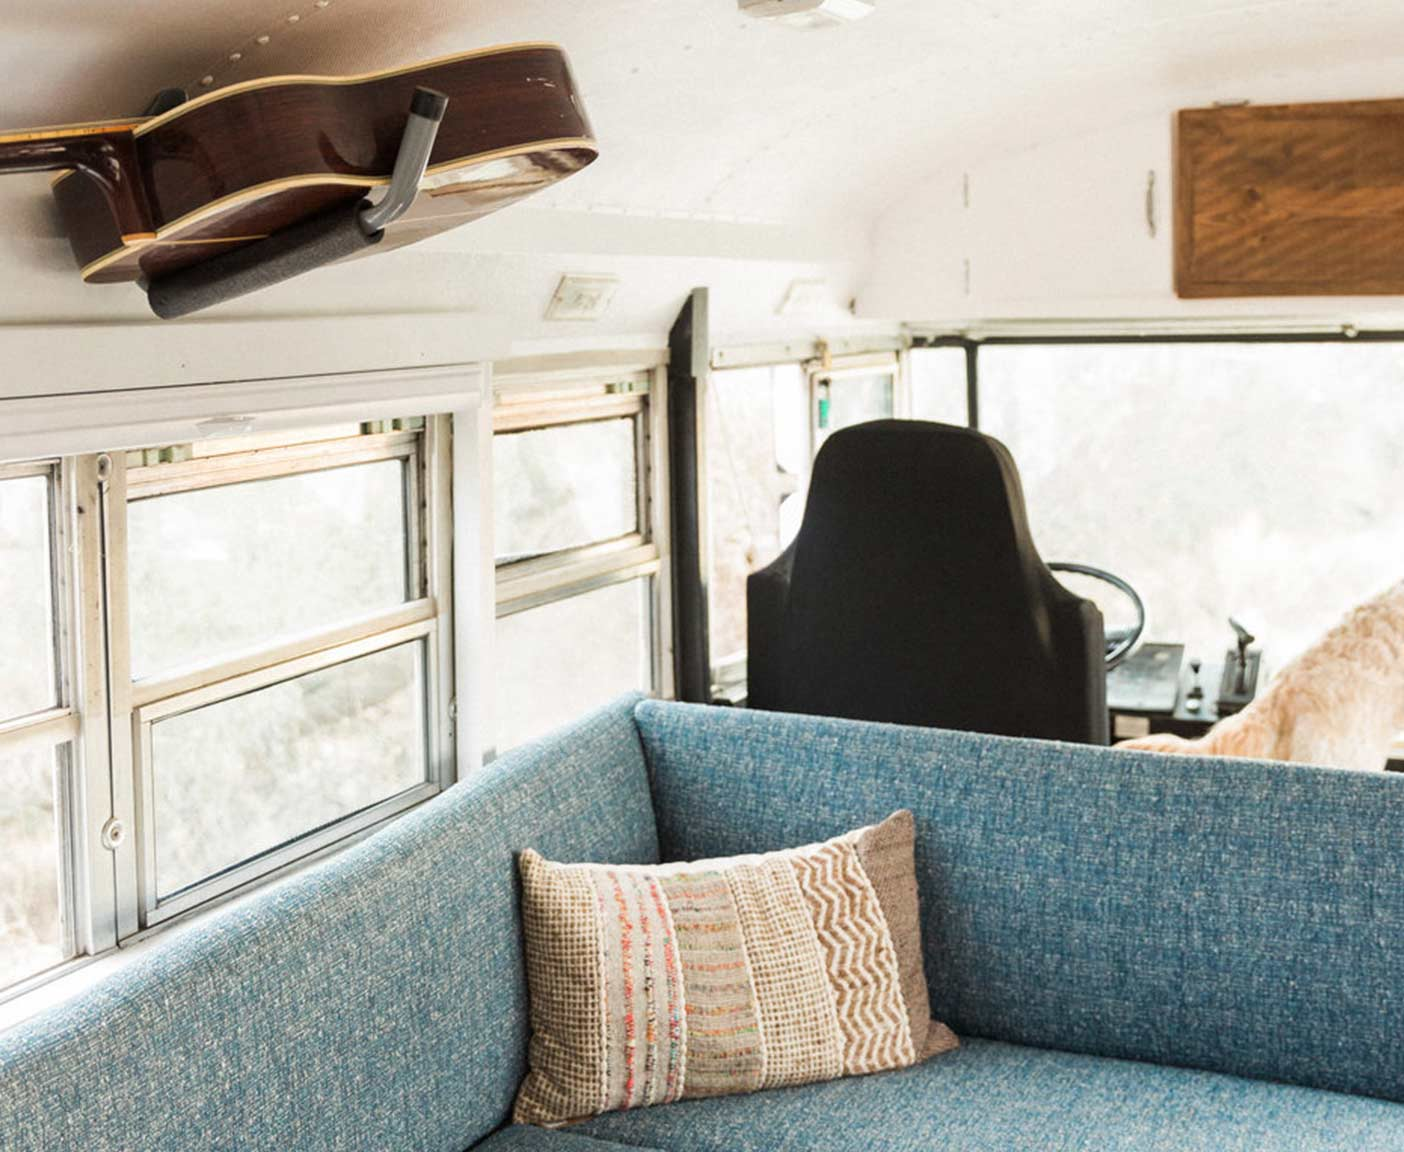 contented-nomads-international-amtran-school-bus-for-sale-genesis-living-room